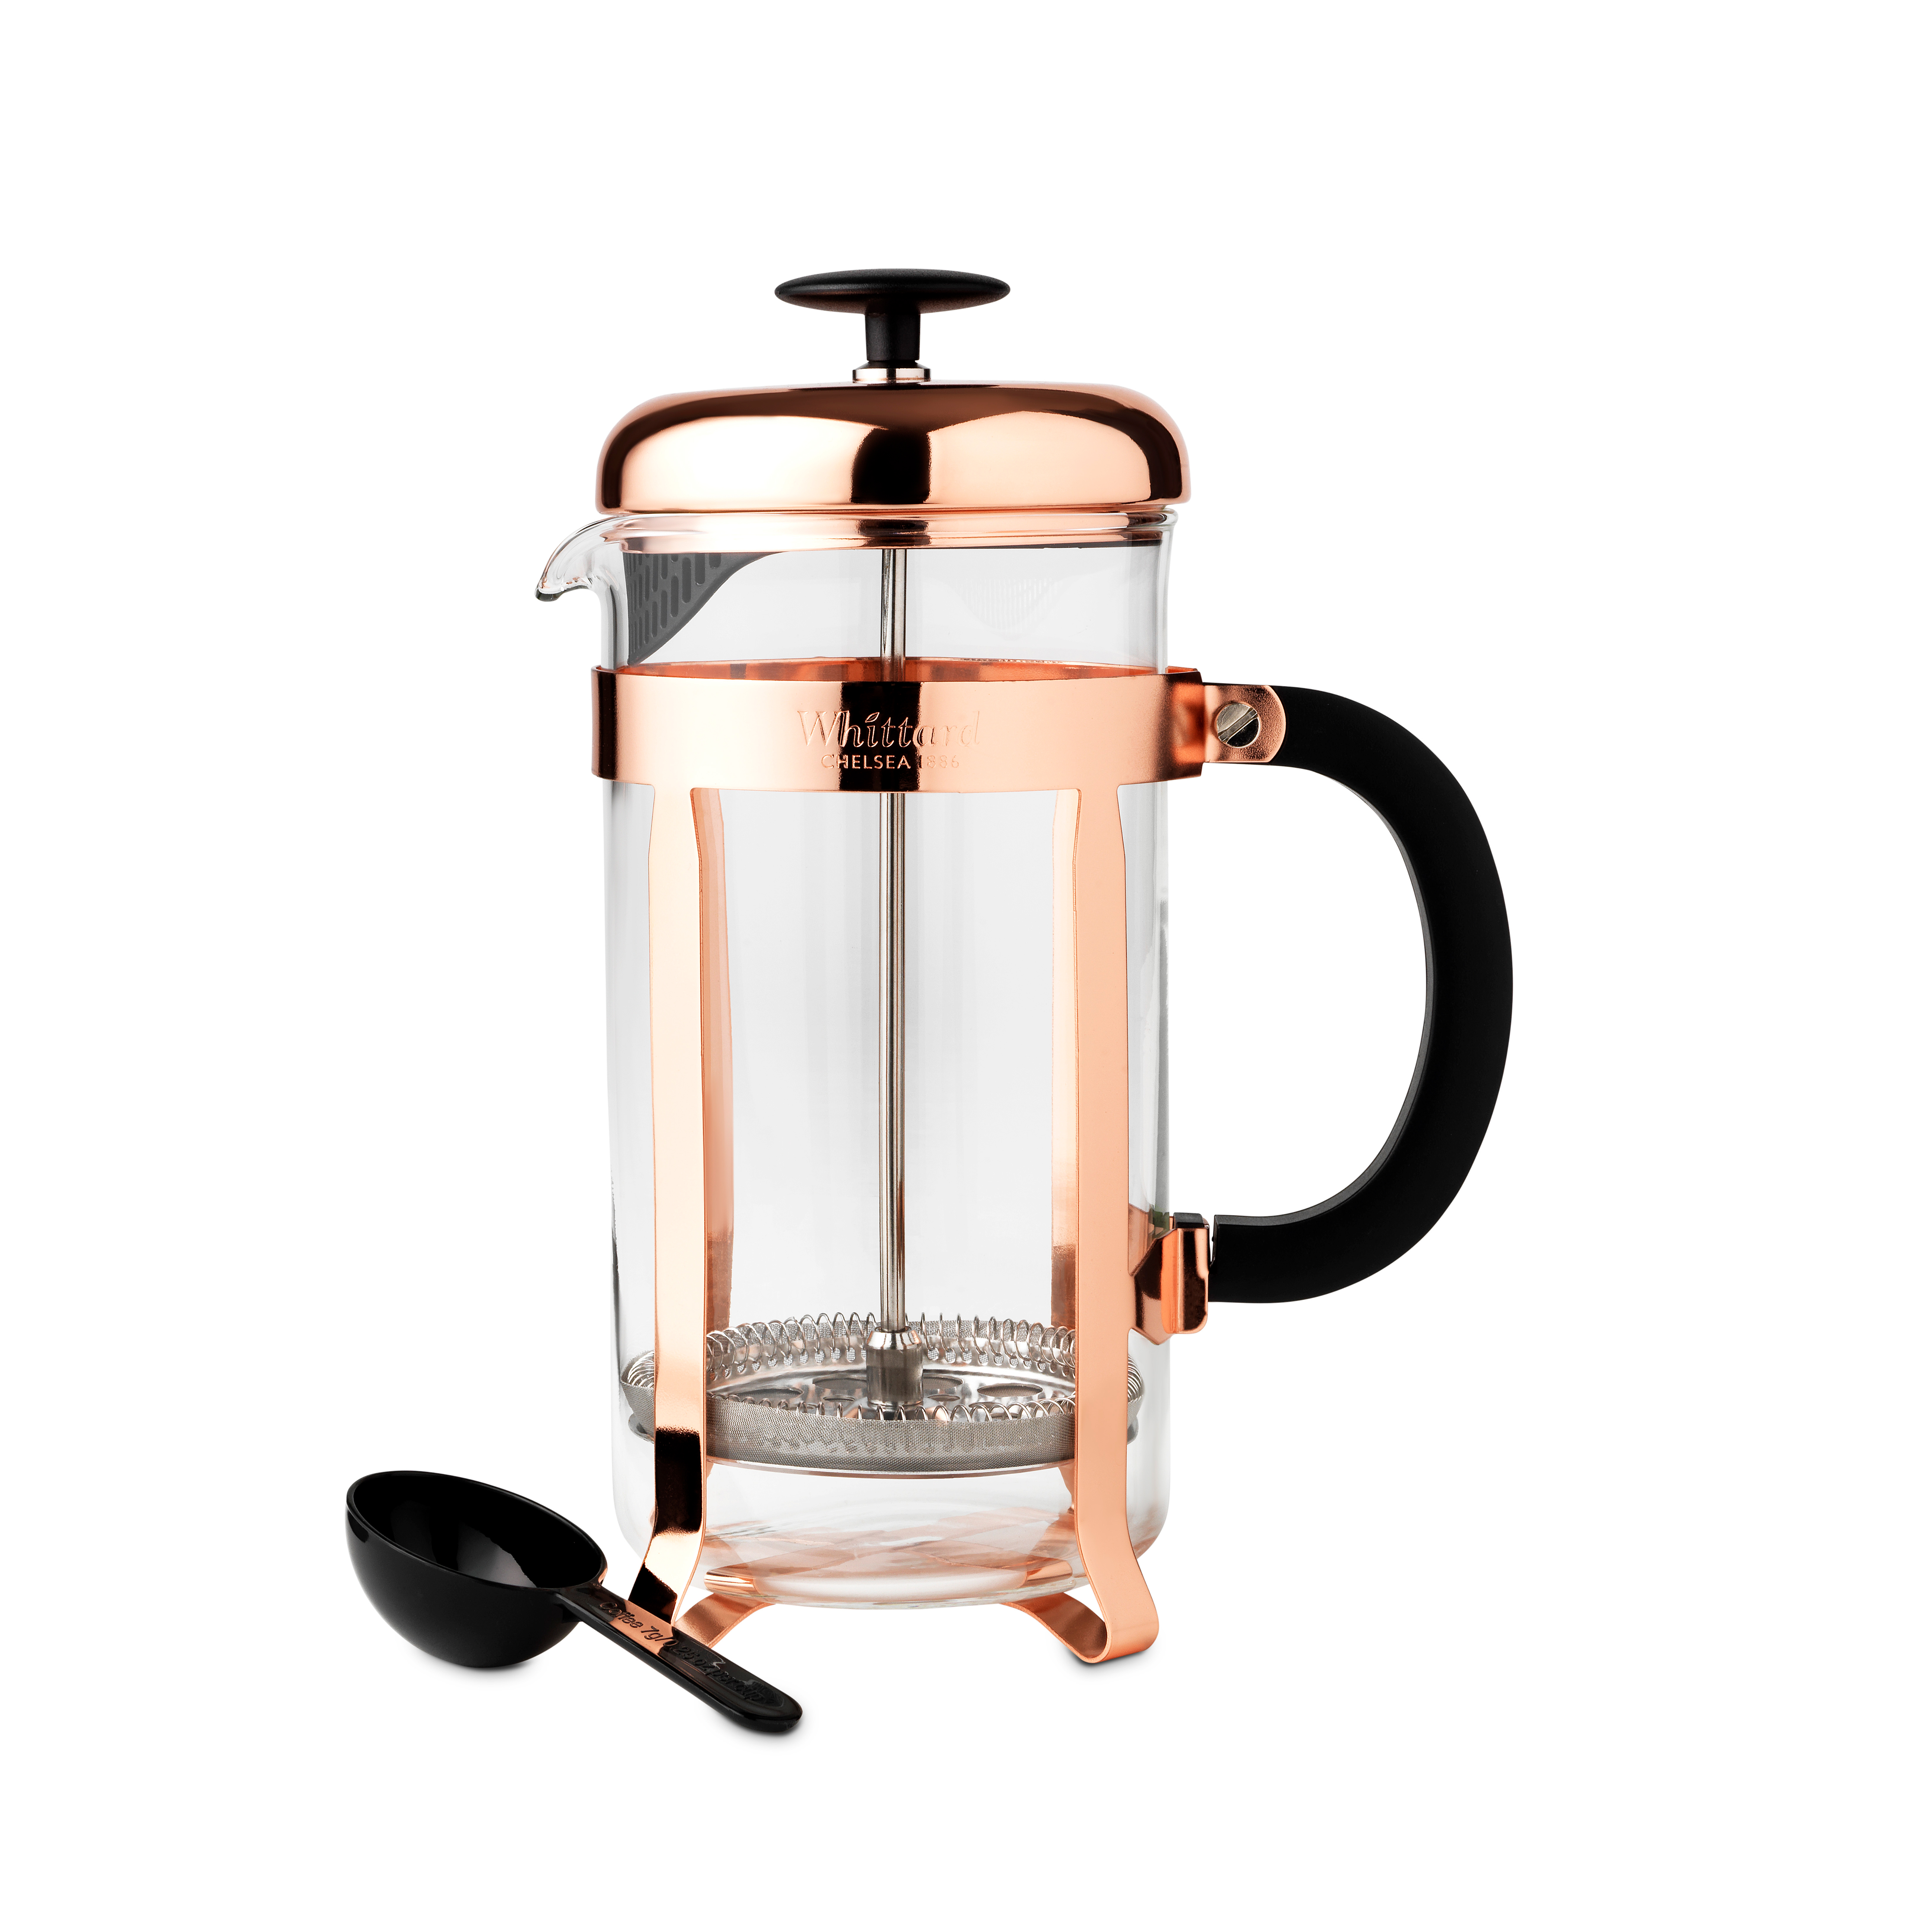 Whittard Copper 3-Cup Cafetiere